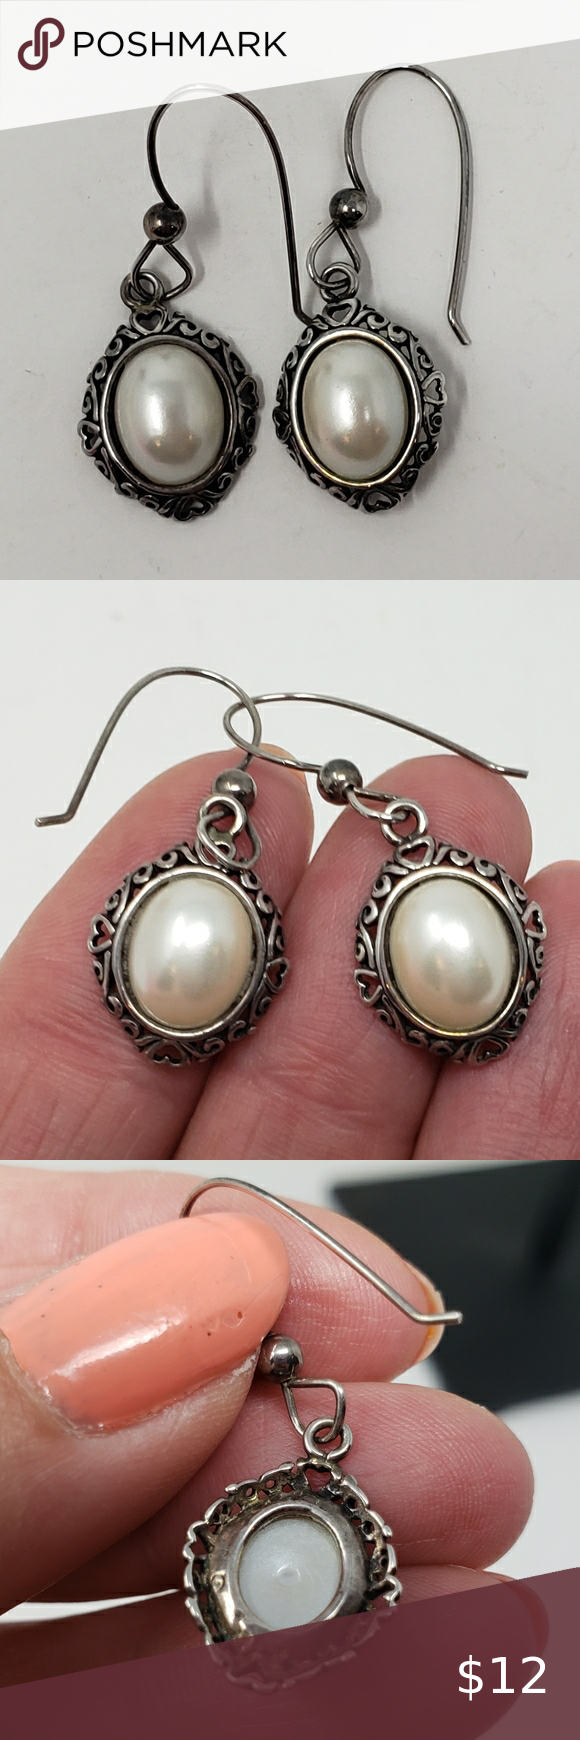 Faux Pearl Silver Earrings